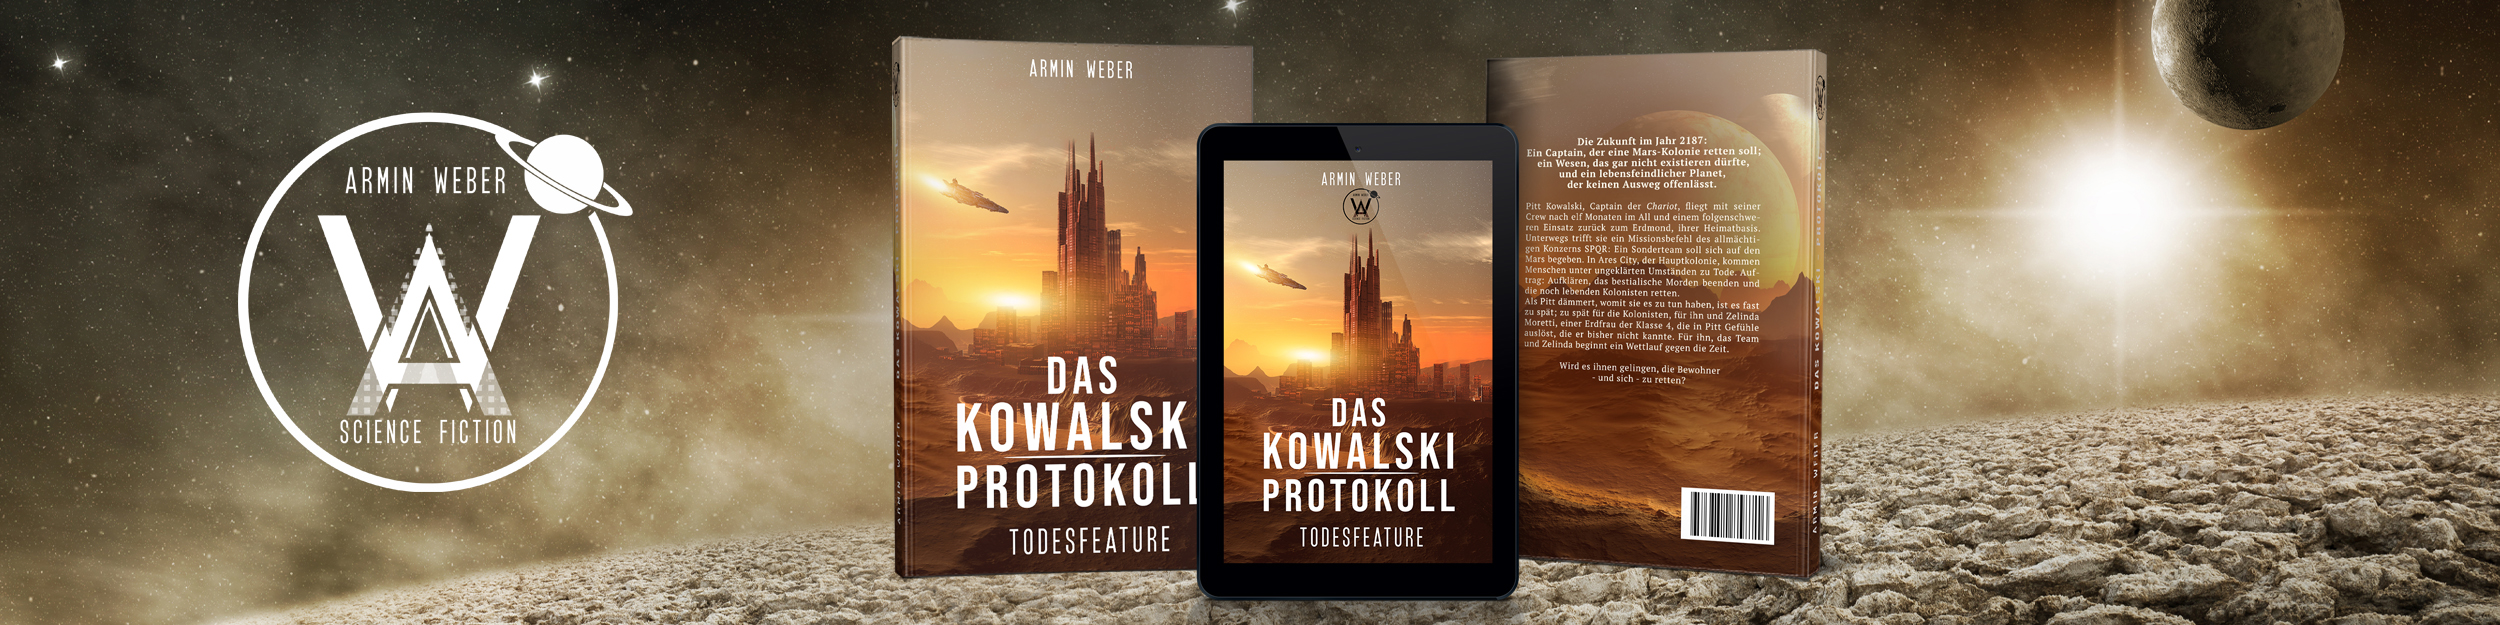 Science Fiction E-books und Bücher